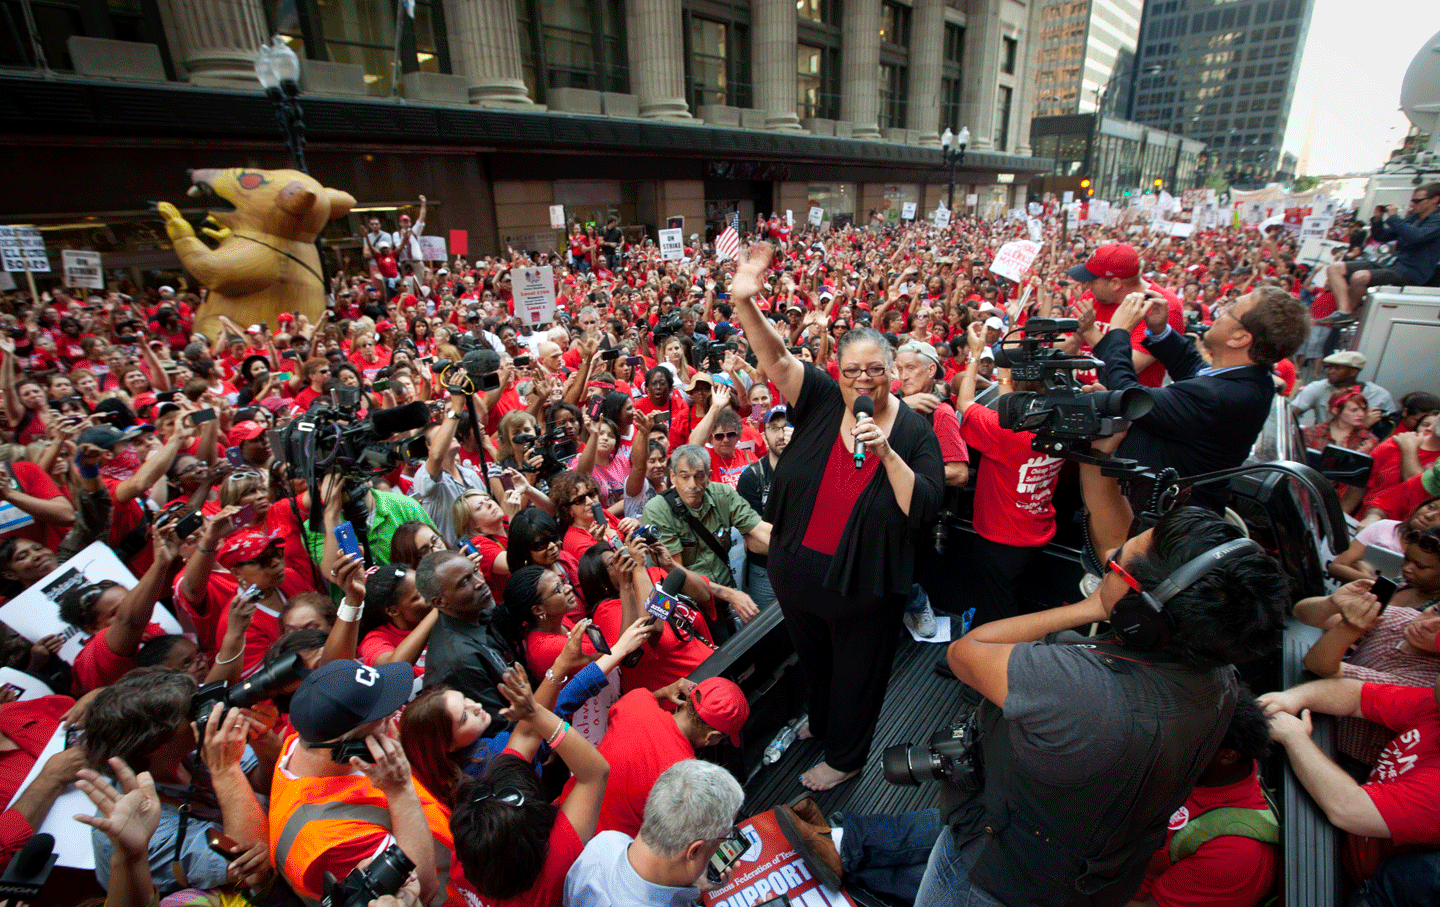 Chicago Teachers Union President Karen Lewis